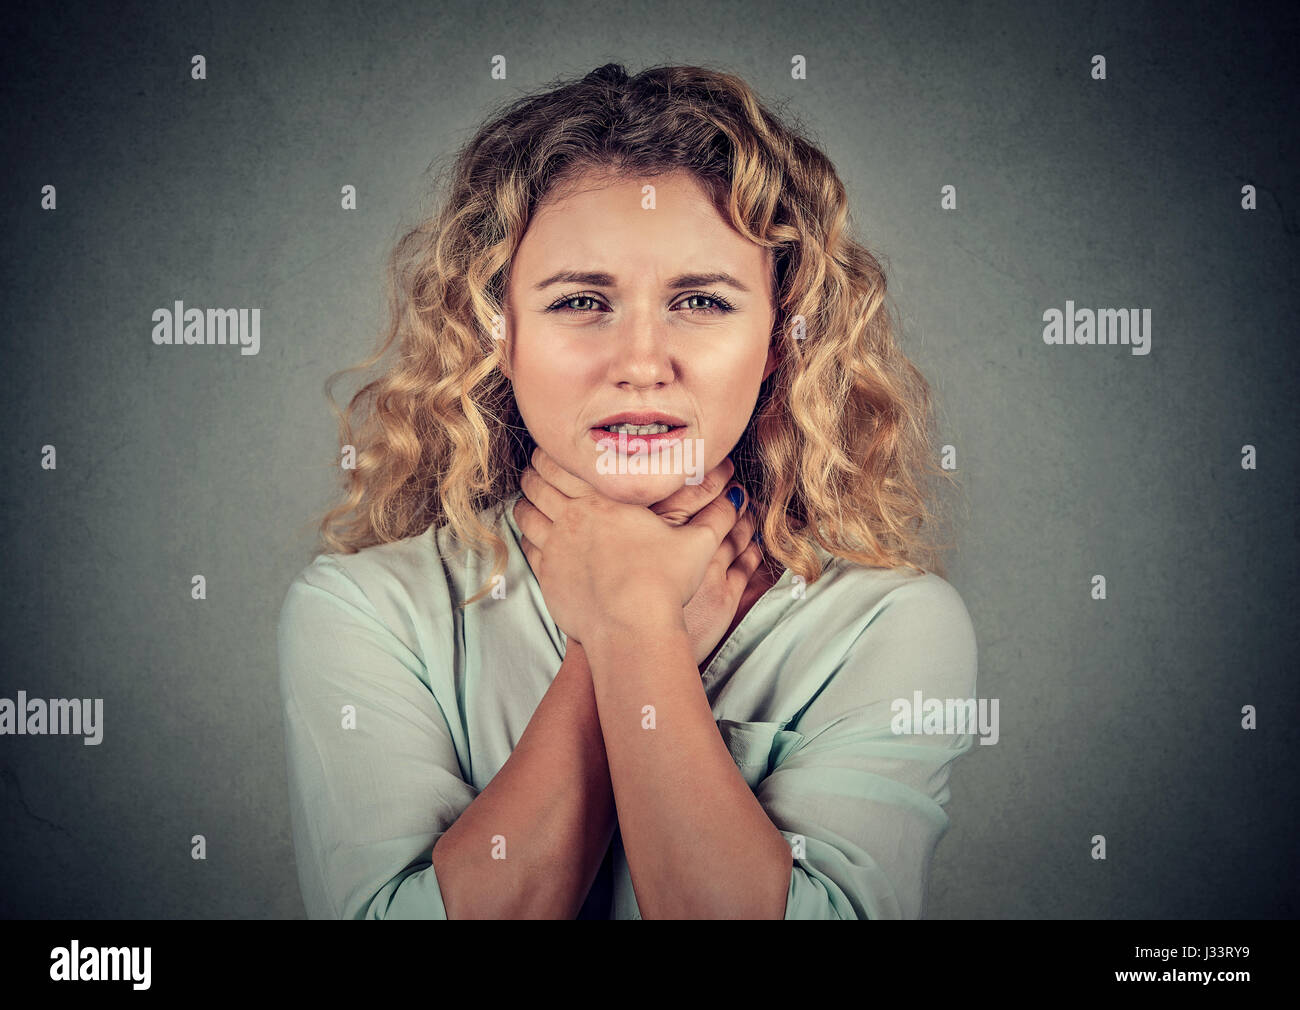 Young woman having asthma attack or choking can't breath - Stock Image